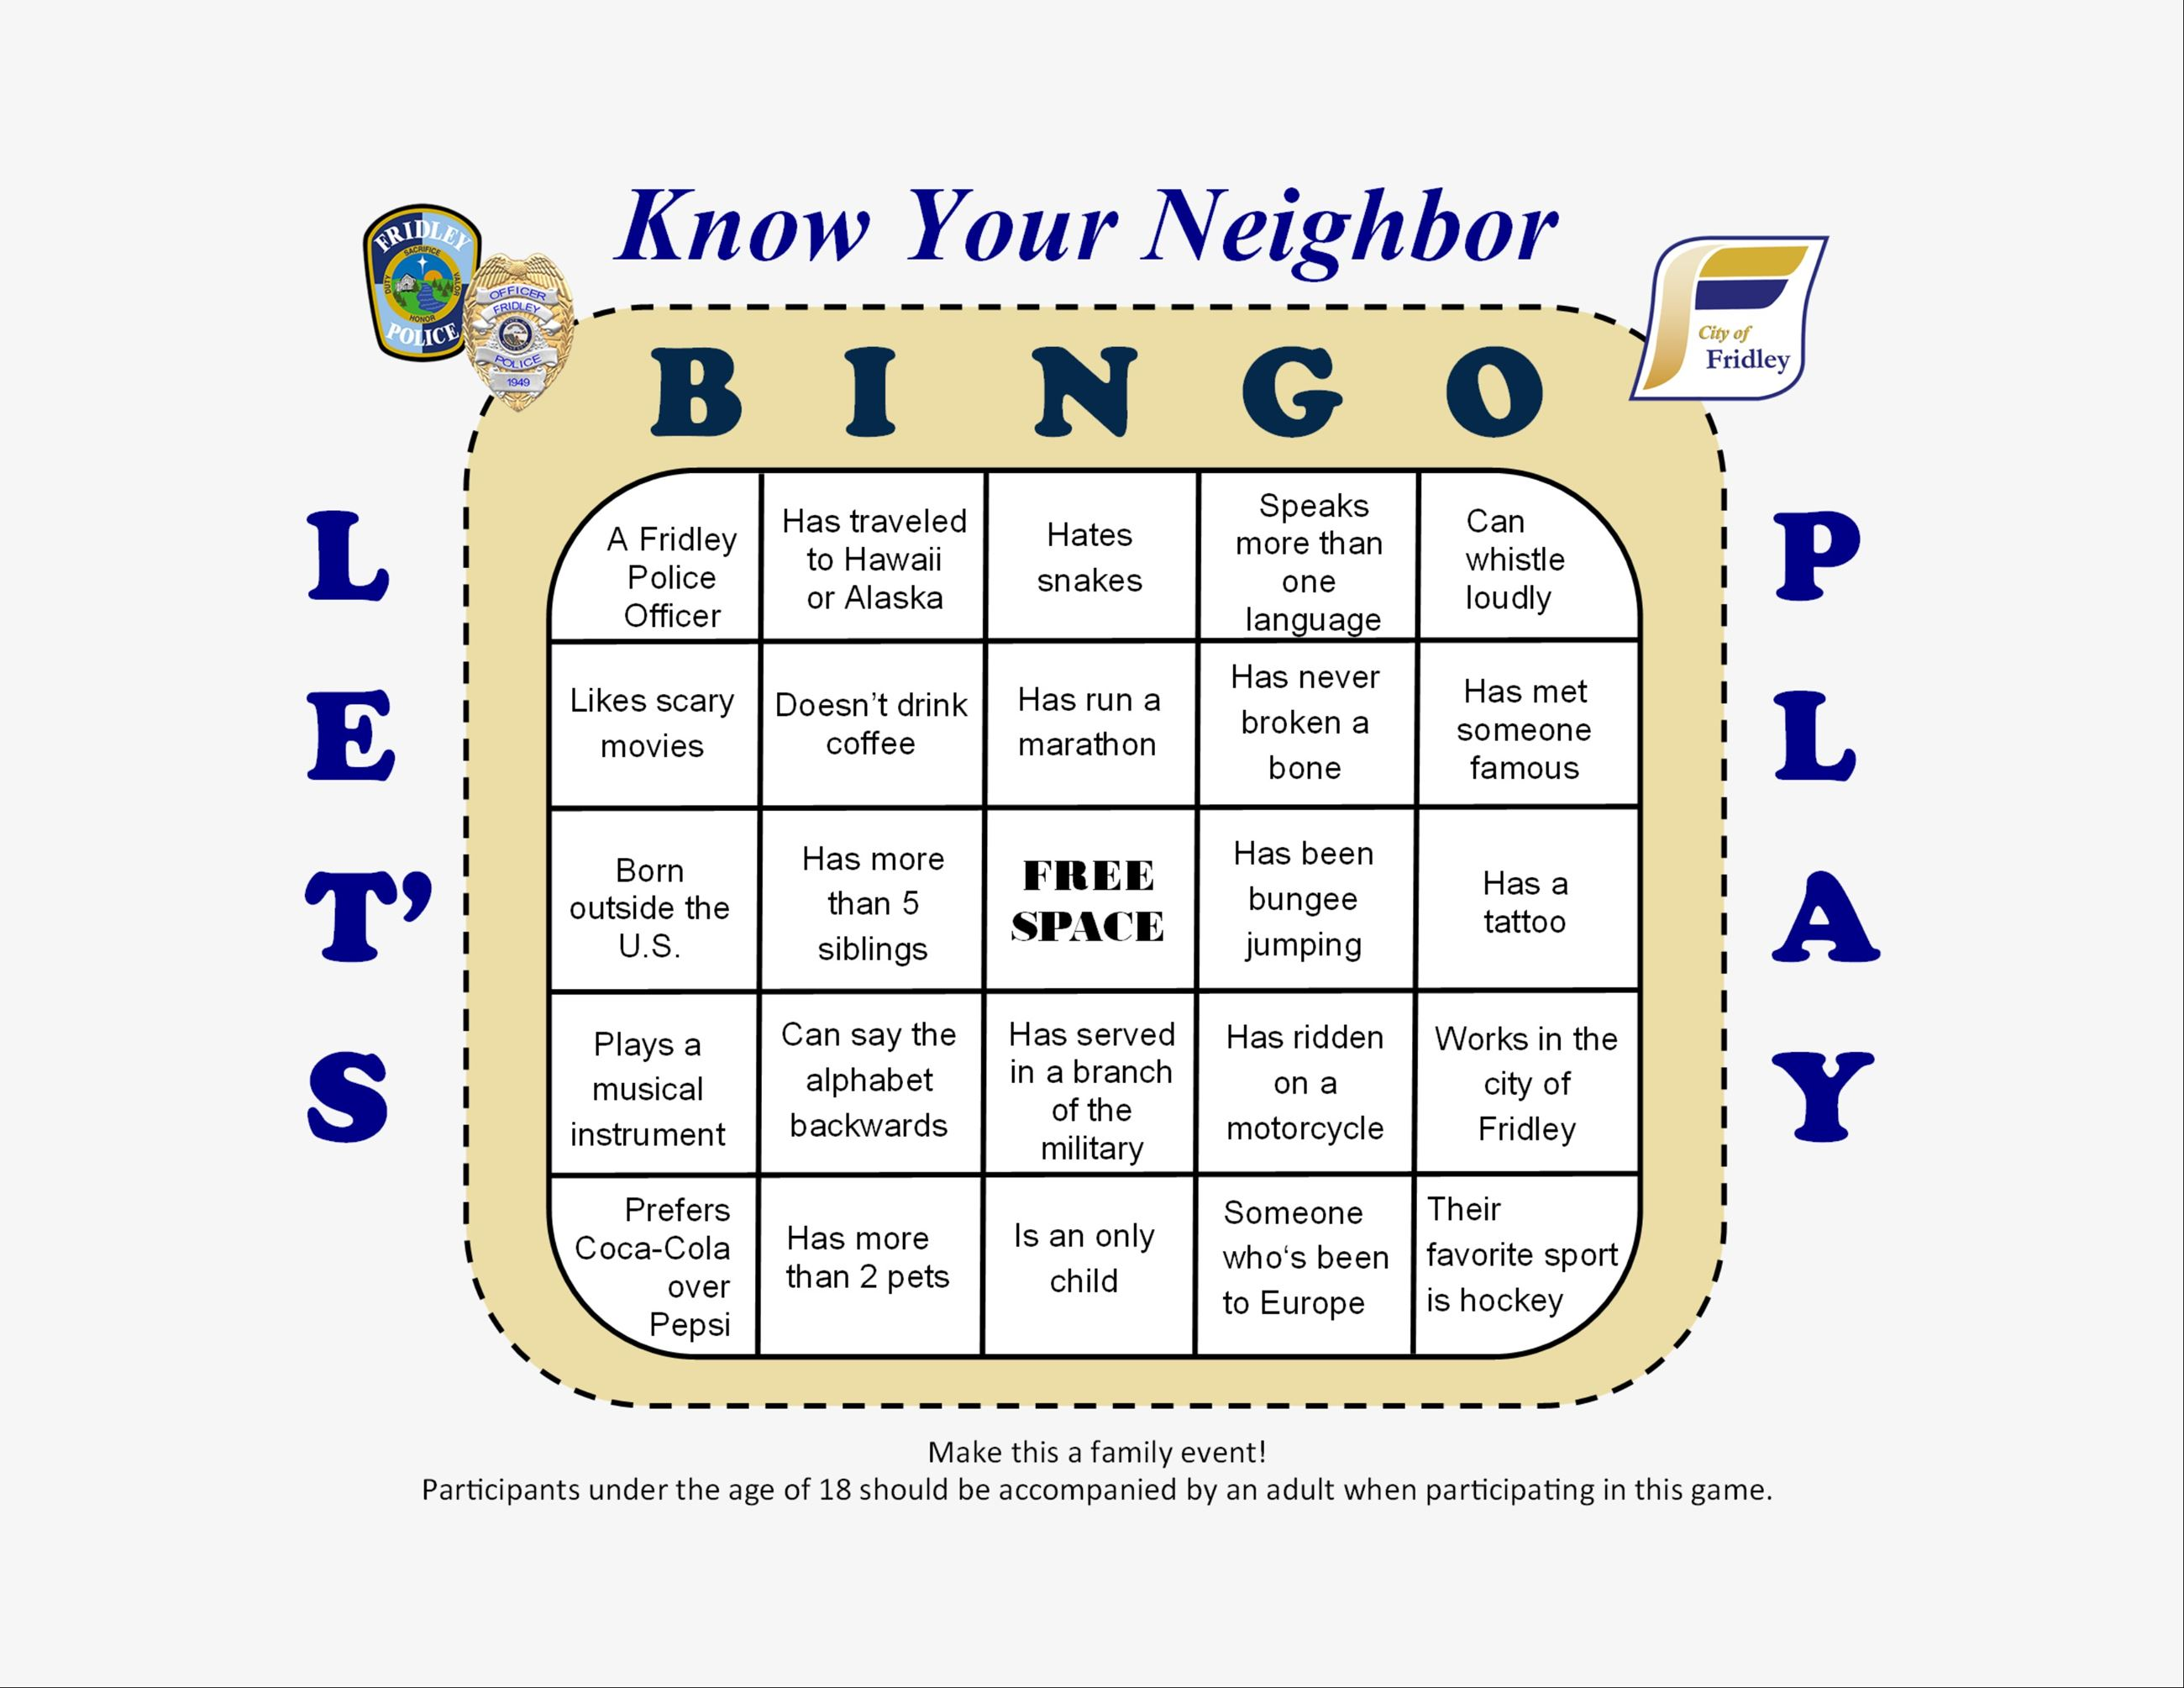 Know Your Neighbor BINGO Card